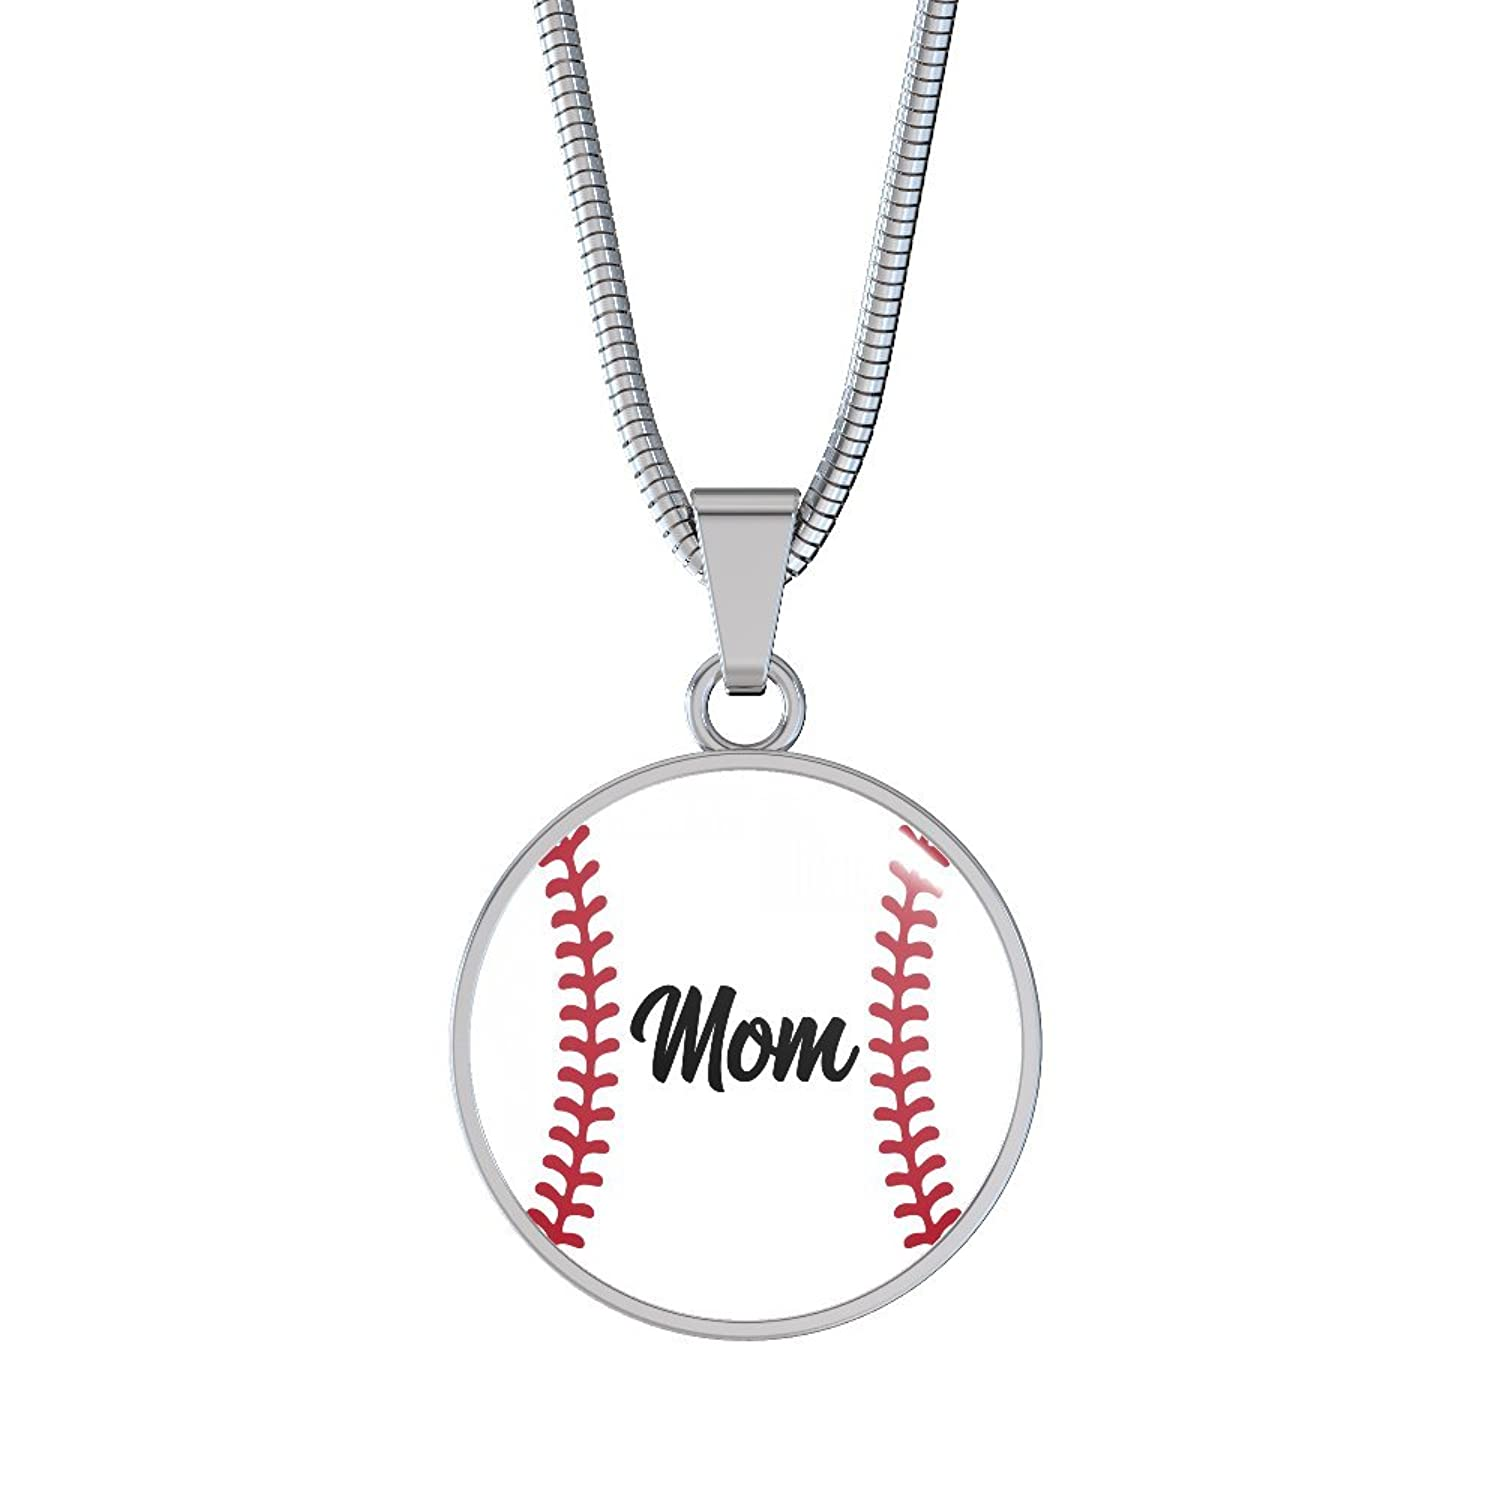 bible product necklace steel stainless hzman silver verse all things strength pendant i do baseball can cross